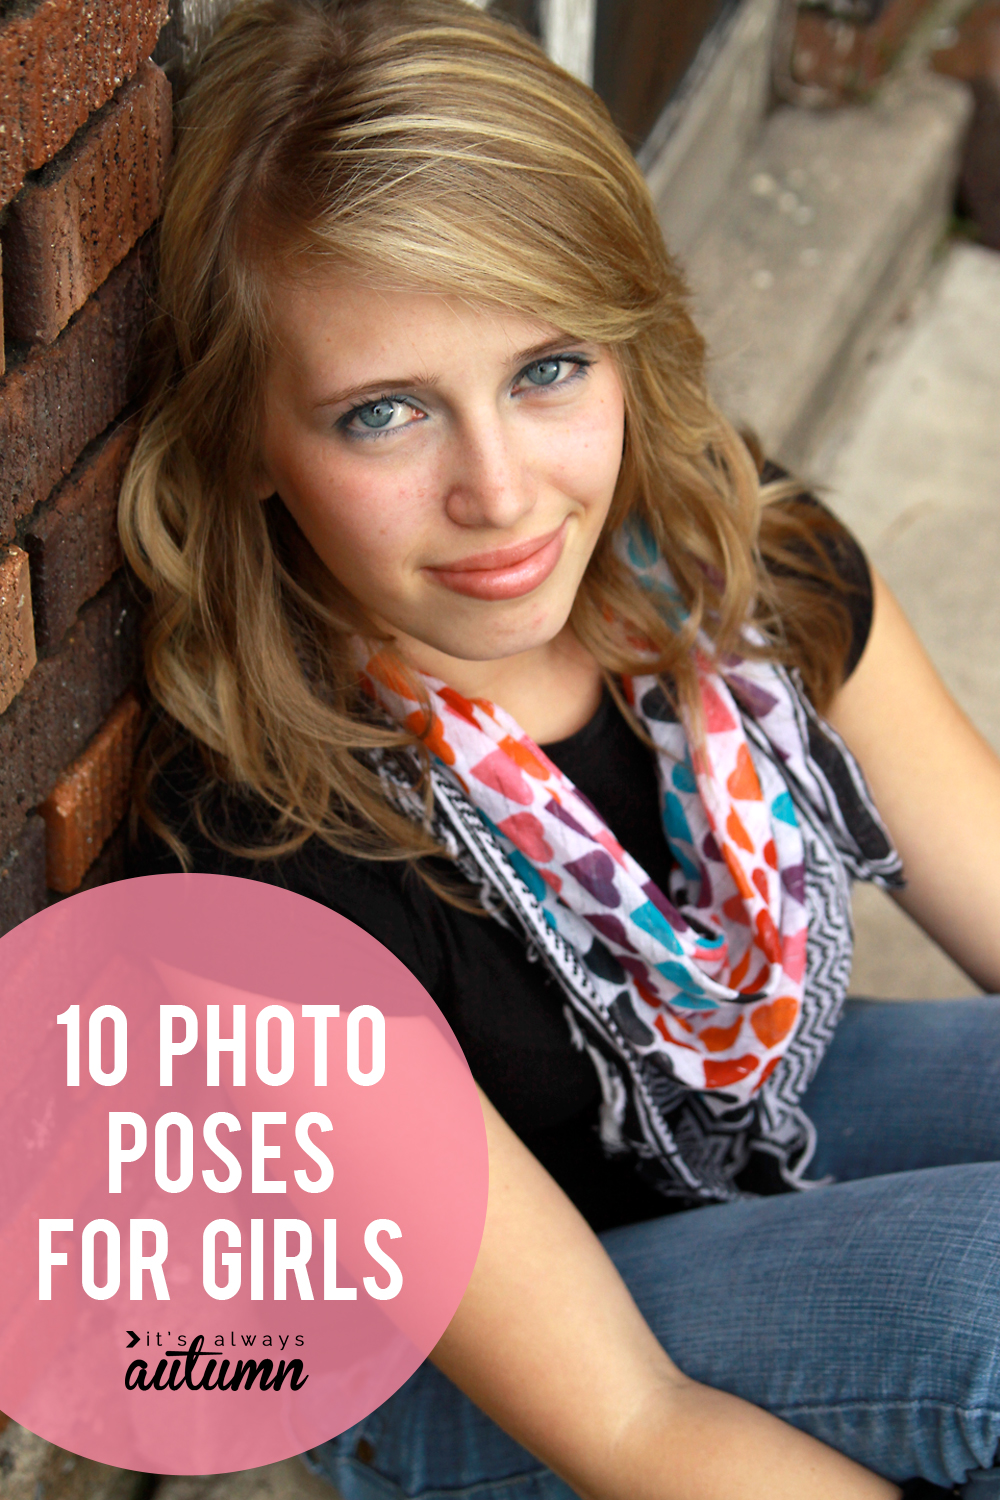 Good photo poses for girls